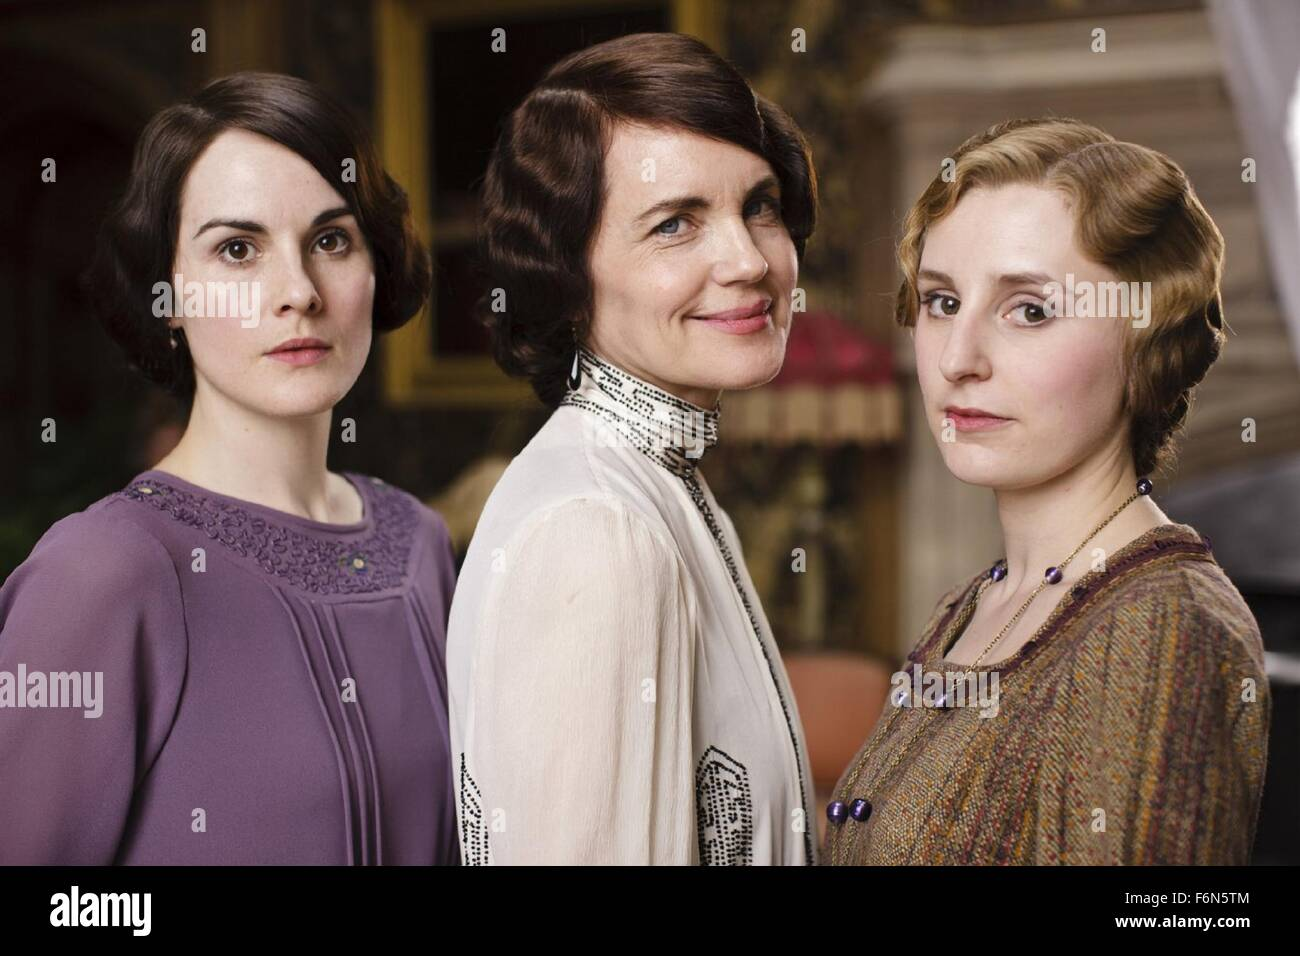 Mar 26, 2015 - London, England, United Kingdom - The next season of ITV's period drama Downton Abbey will be its Stock Photo